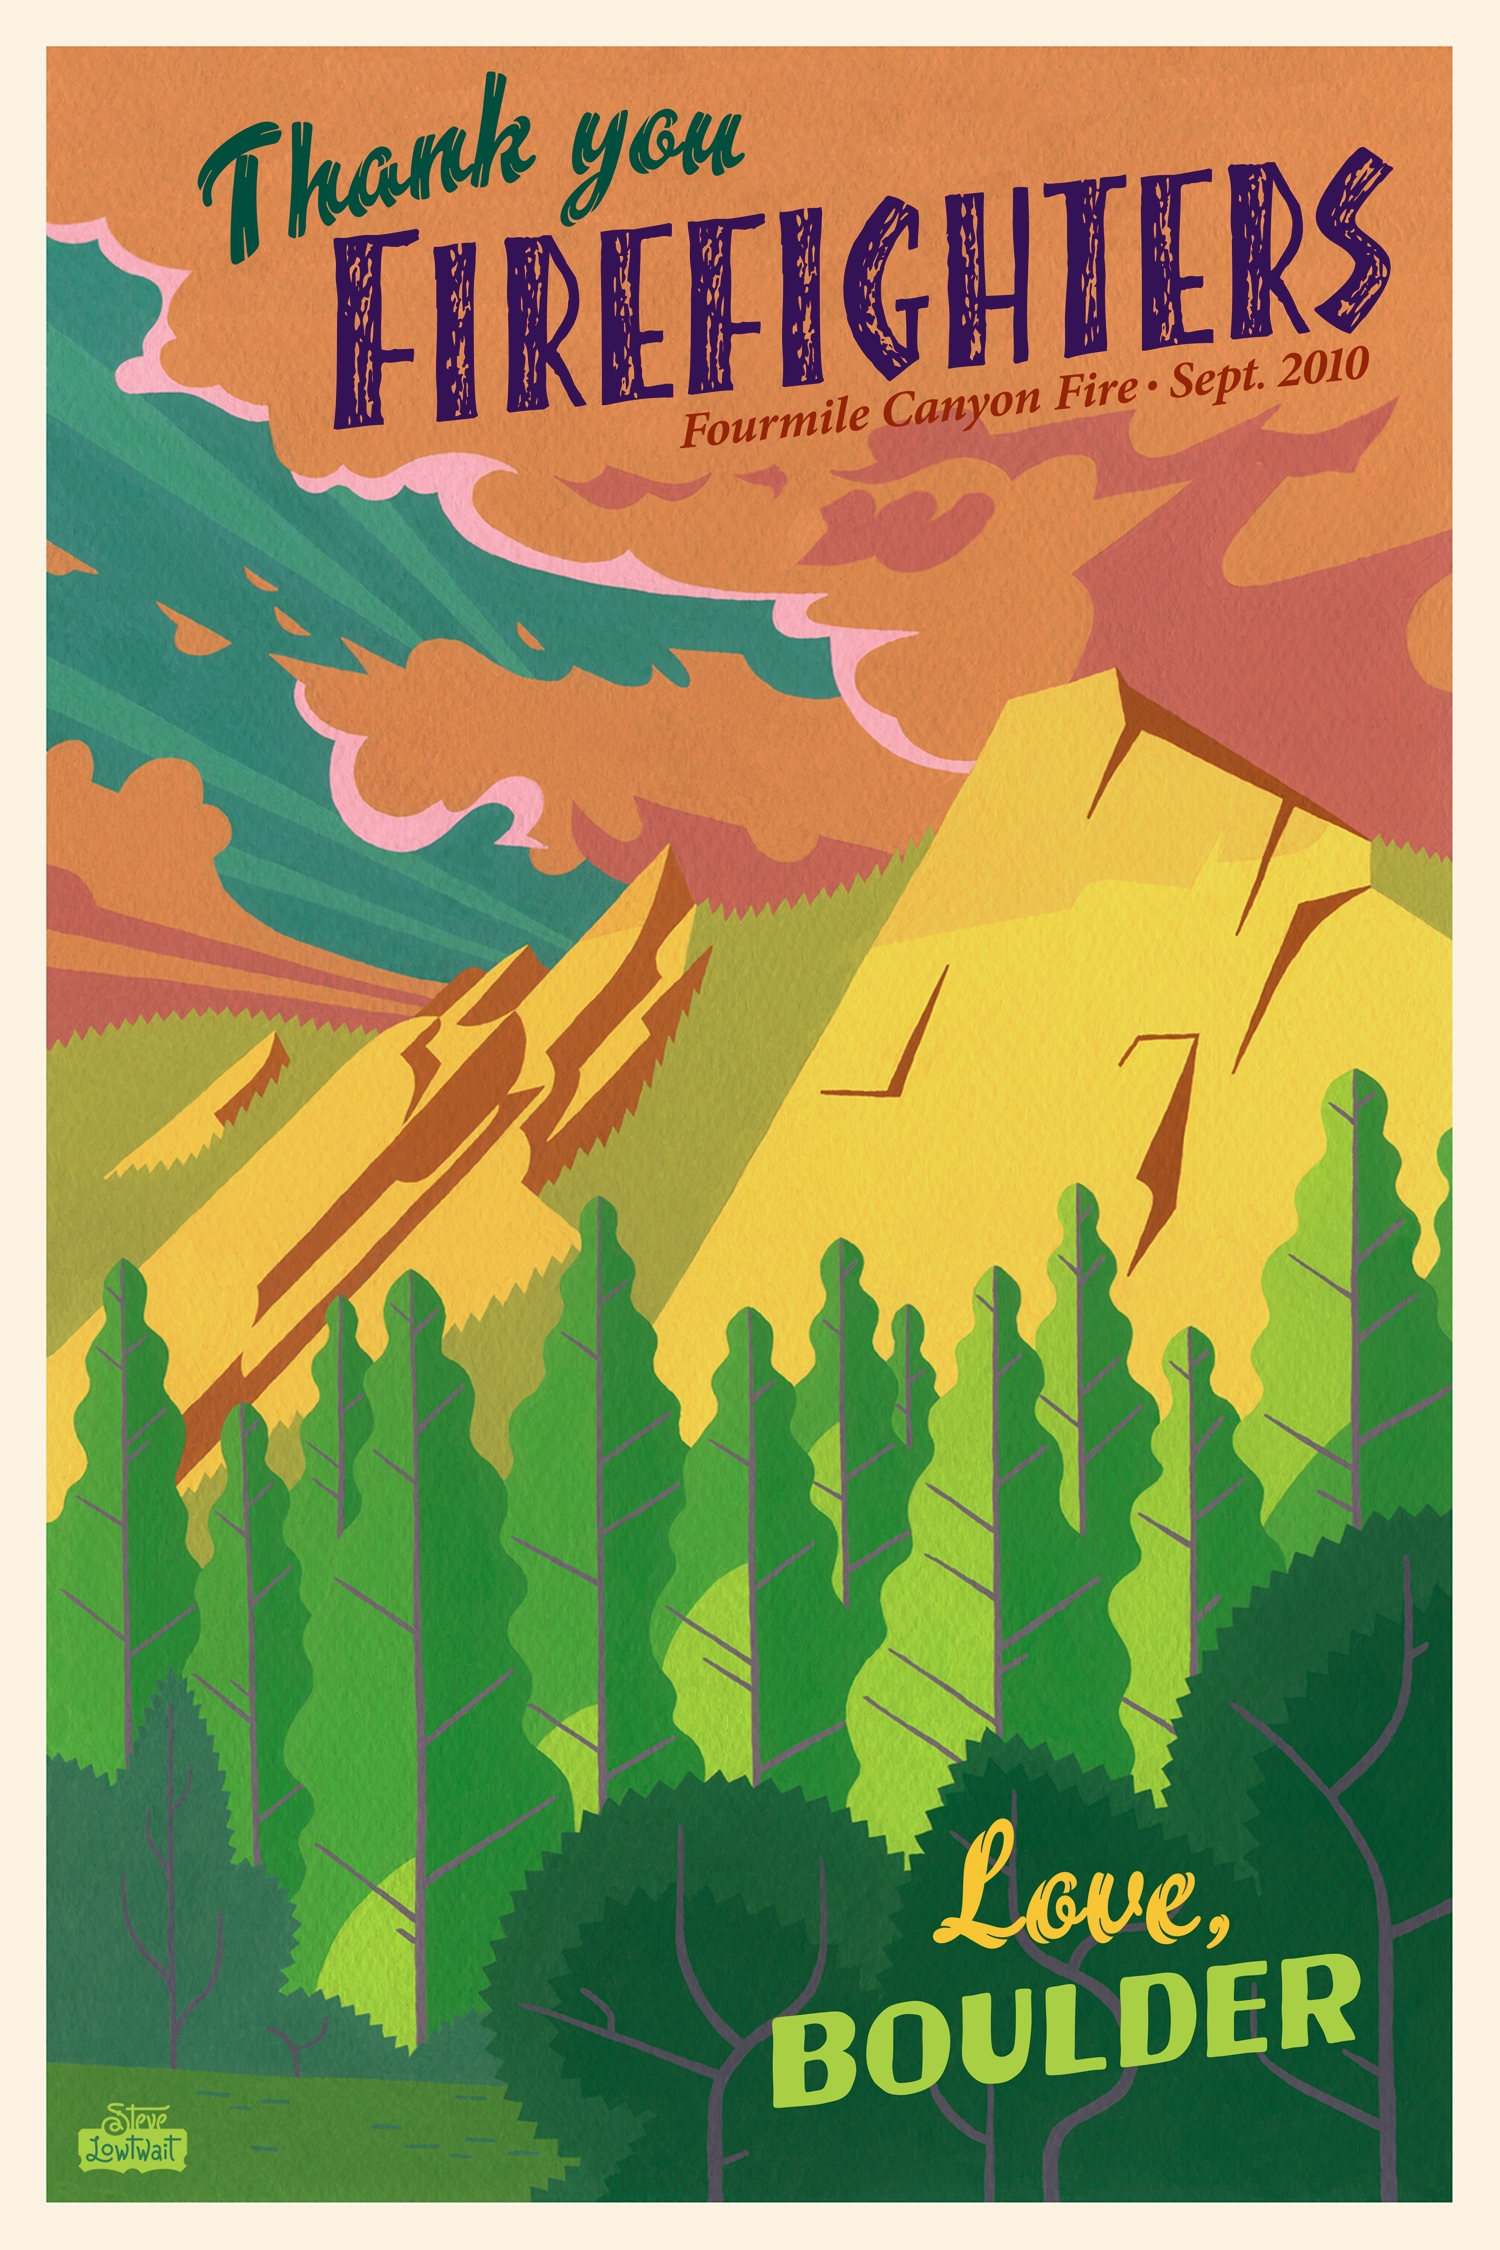 Fourmile Fire-Boulder, Colorado, 2010•This famous poster spread across social media like the wildfire it represents. During a disaster, it's a positive sentiment to thank the brave responders who save lives and homes. This piece inspired a movement of gratitude in a time of hardship, including a parade for firefighters.